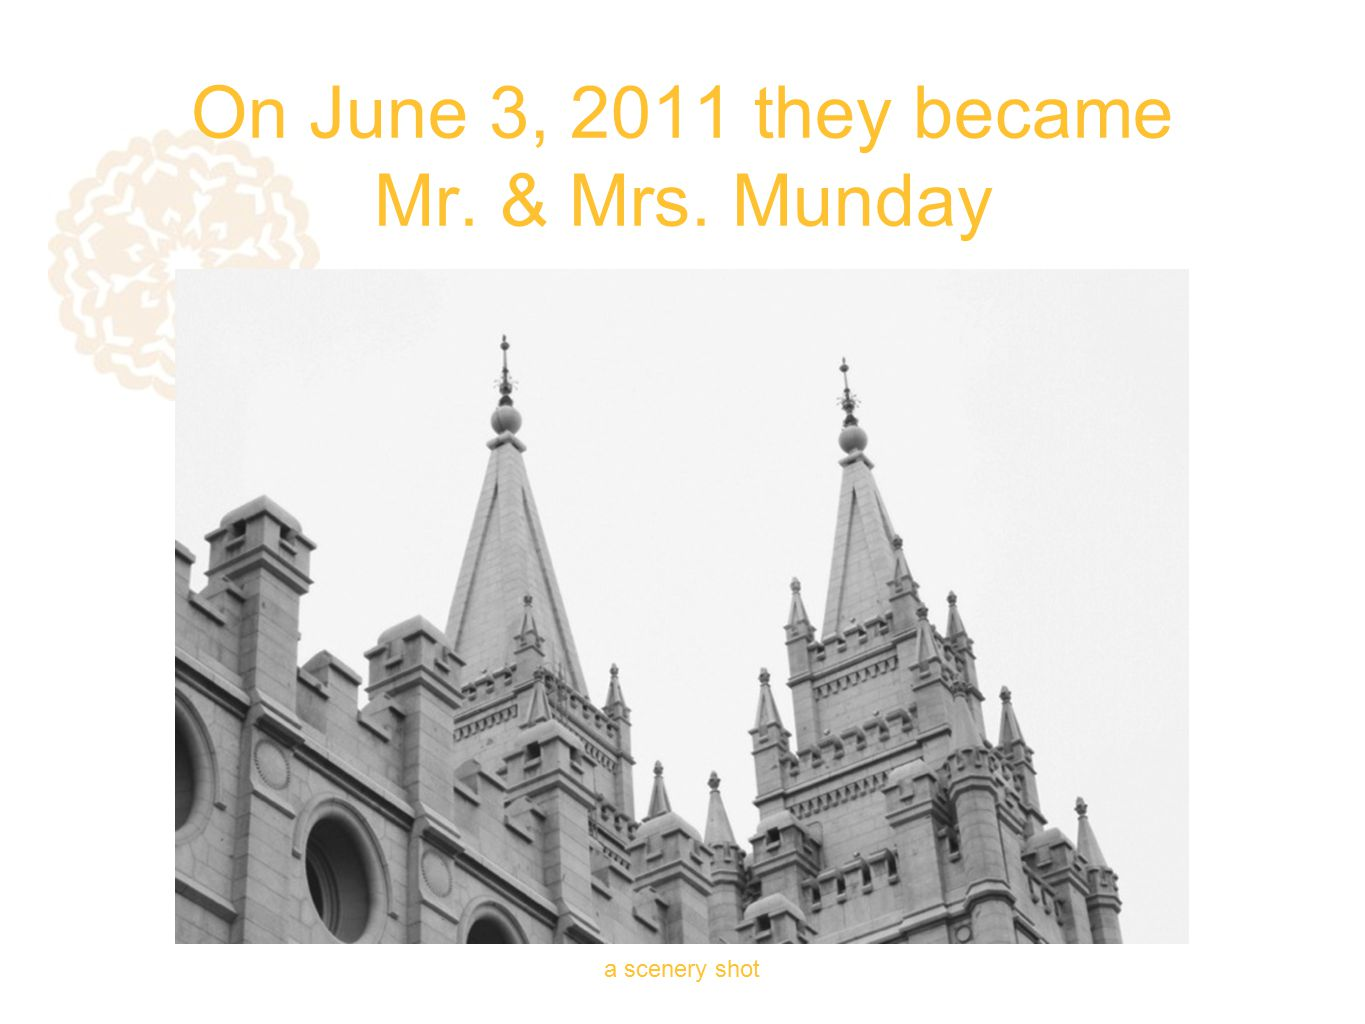 On June 3, 2011 they became Mr. & Mrs. Munday a scenery shot